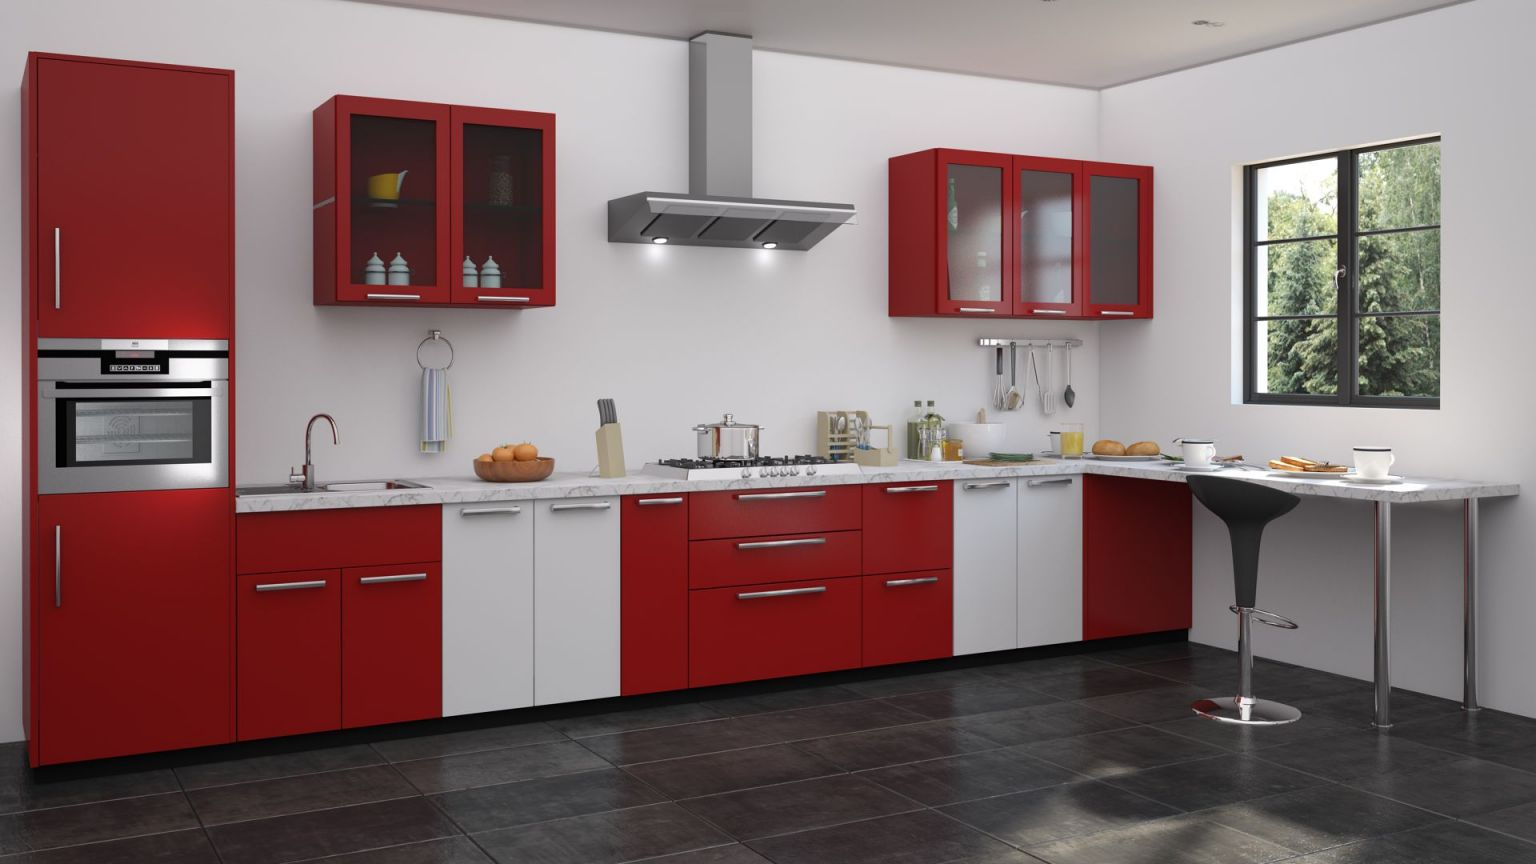 Awesome Modular Kitchen Design Red And White